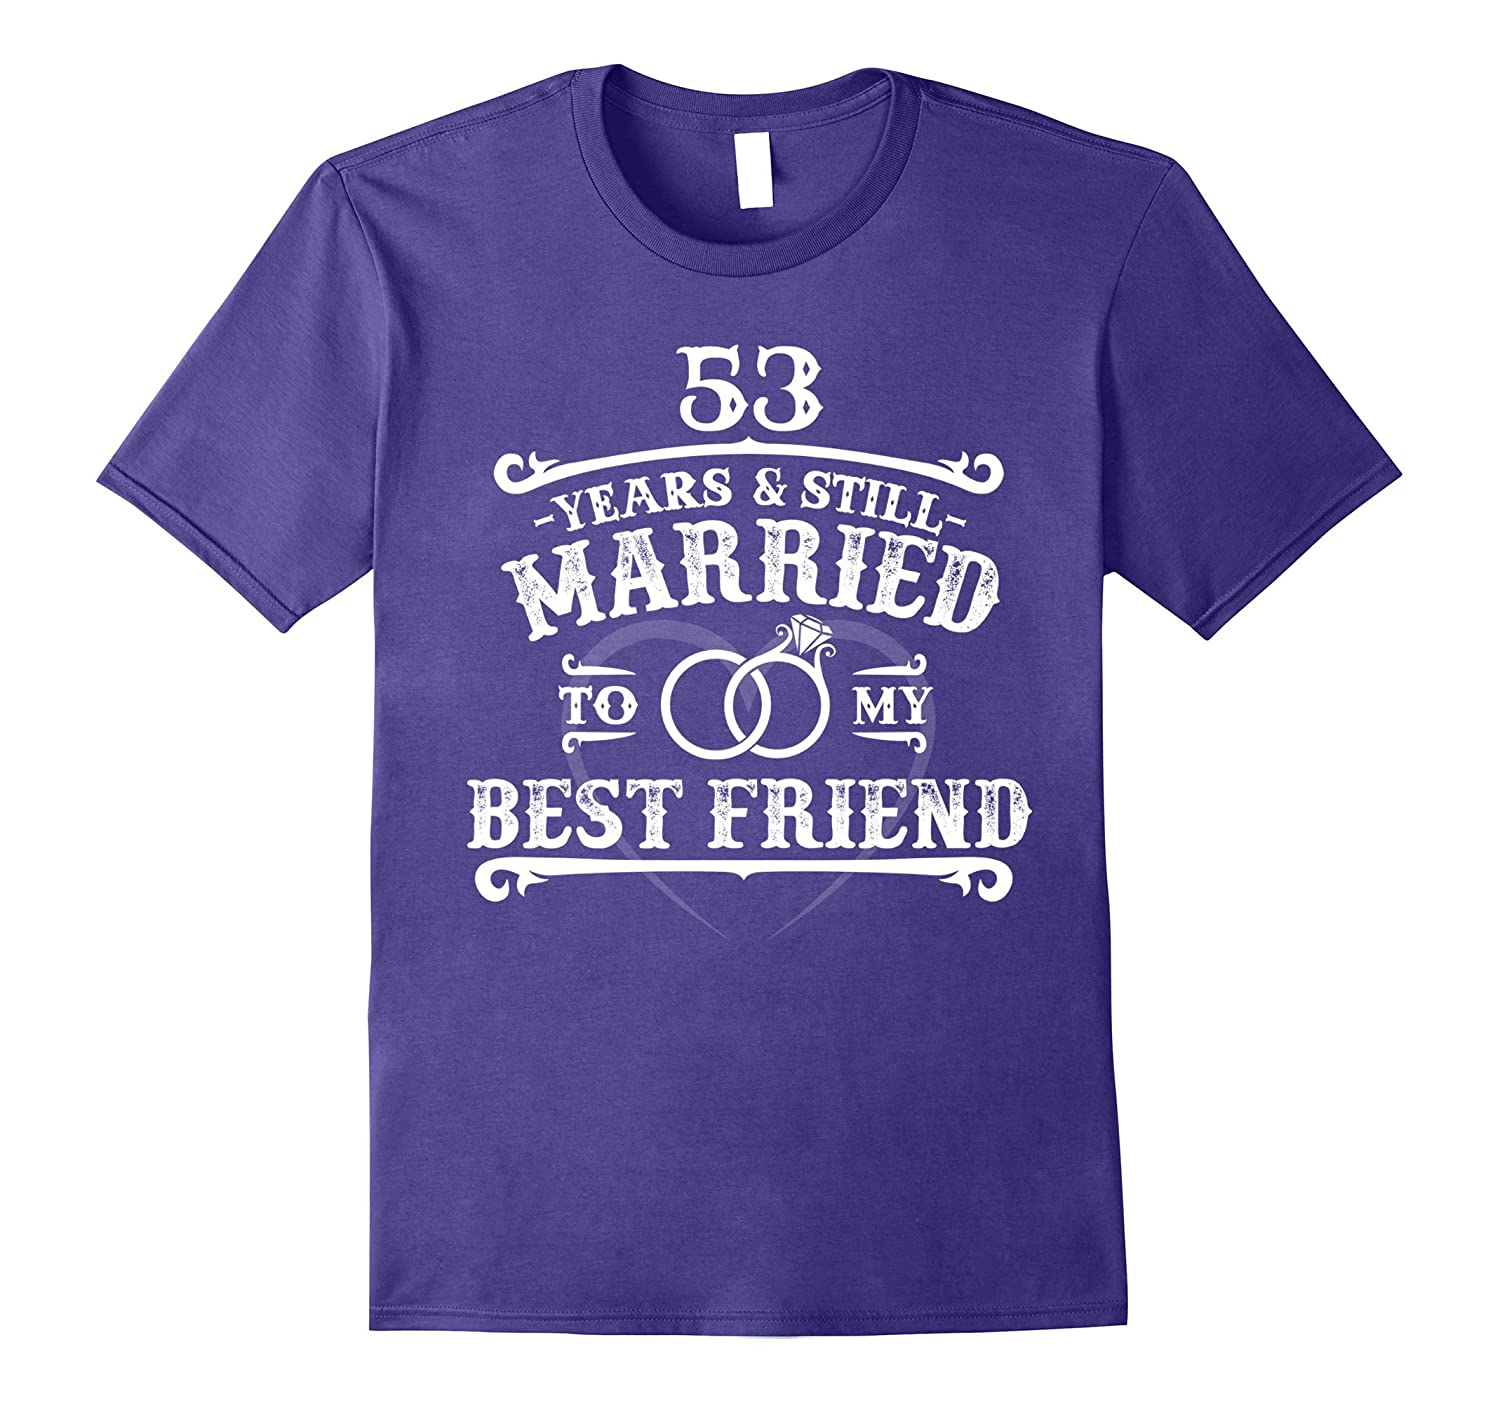 53rd Wedding Anniversary T-Shirt For HusbandWife-PL